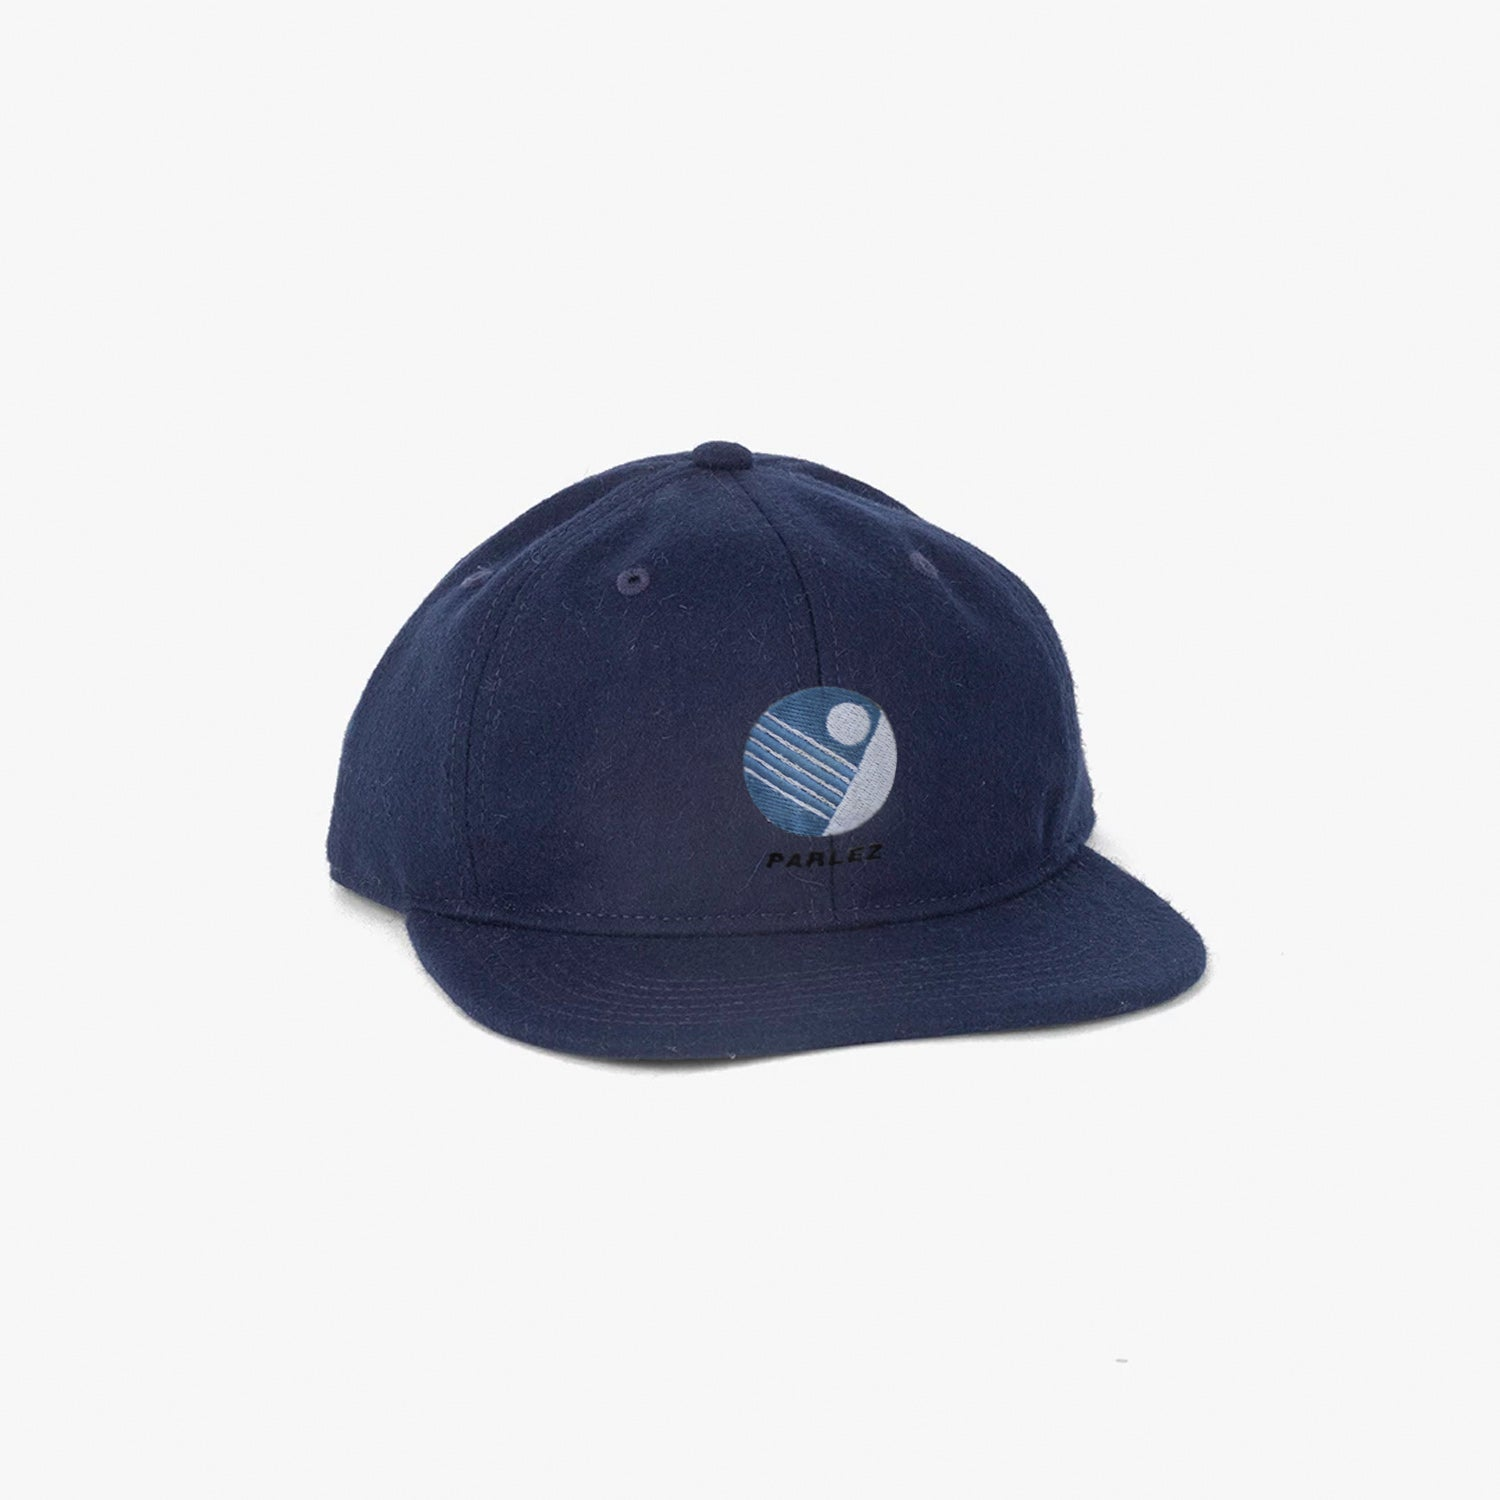 Parlez x Jingo Wool 6 Panel Navy